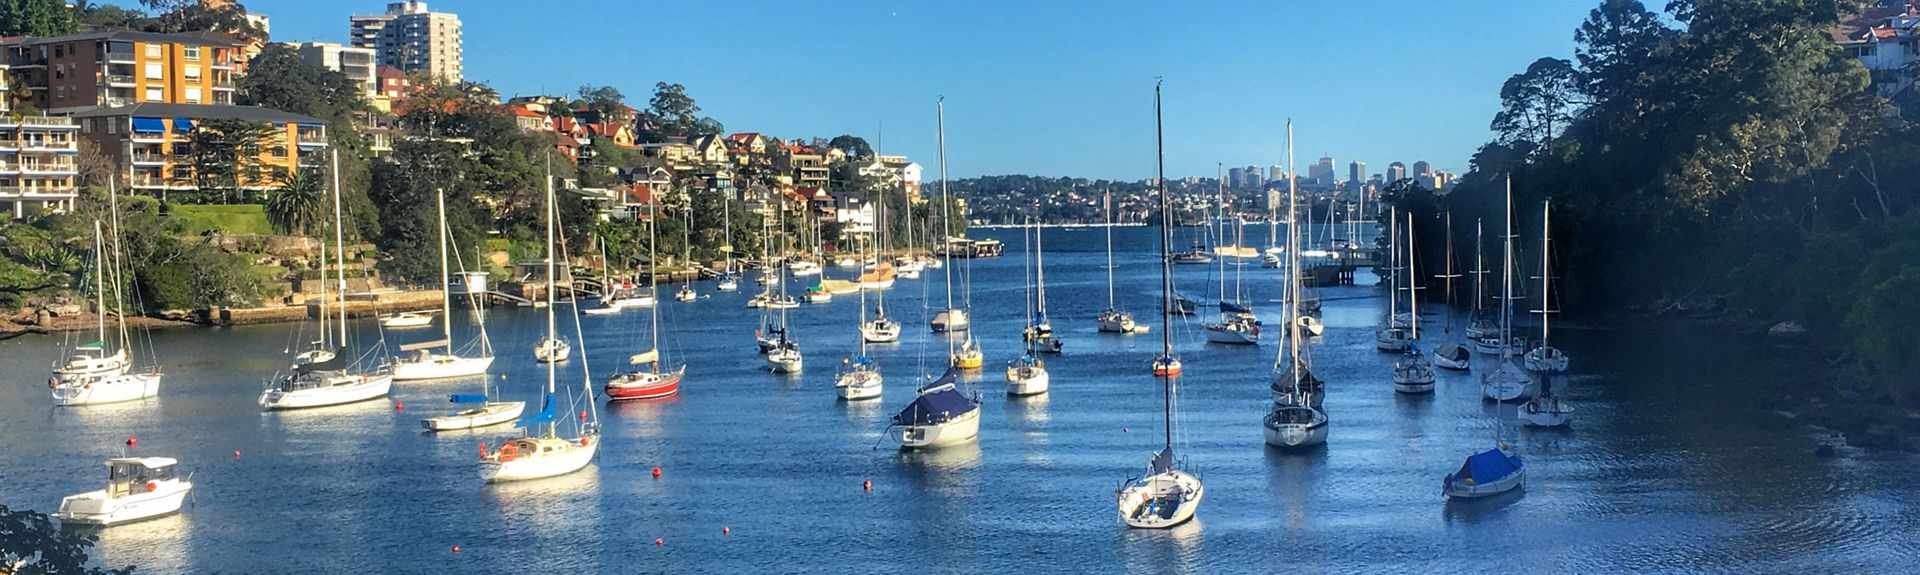 Mosman, Sydney, New South Wales, Australia